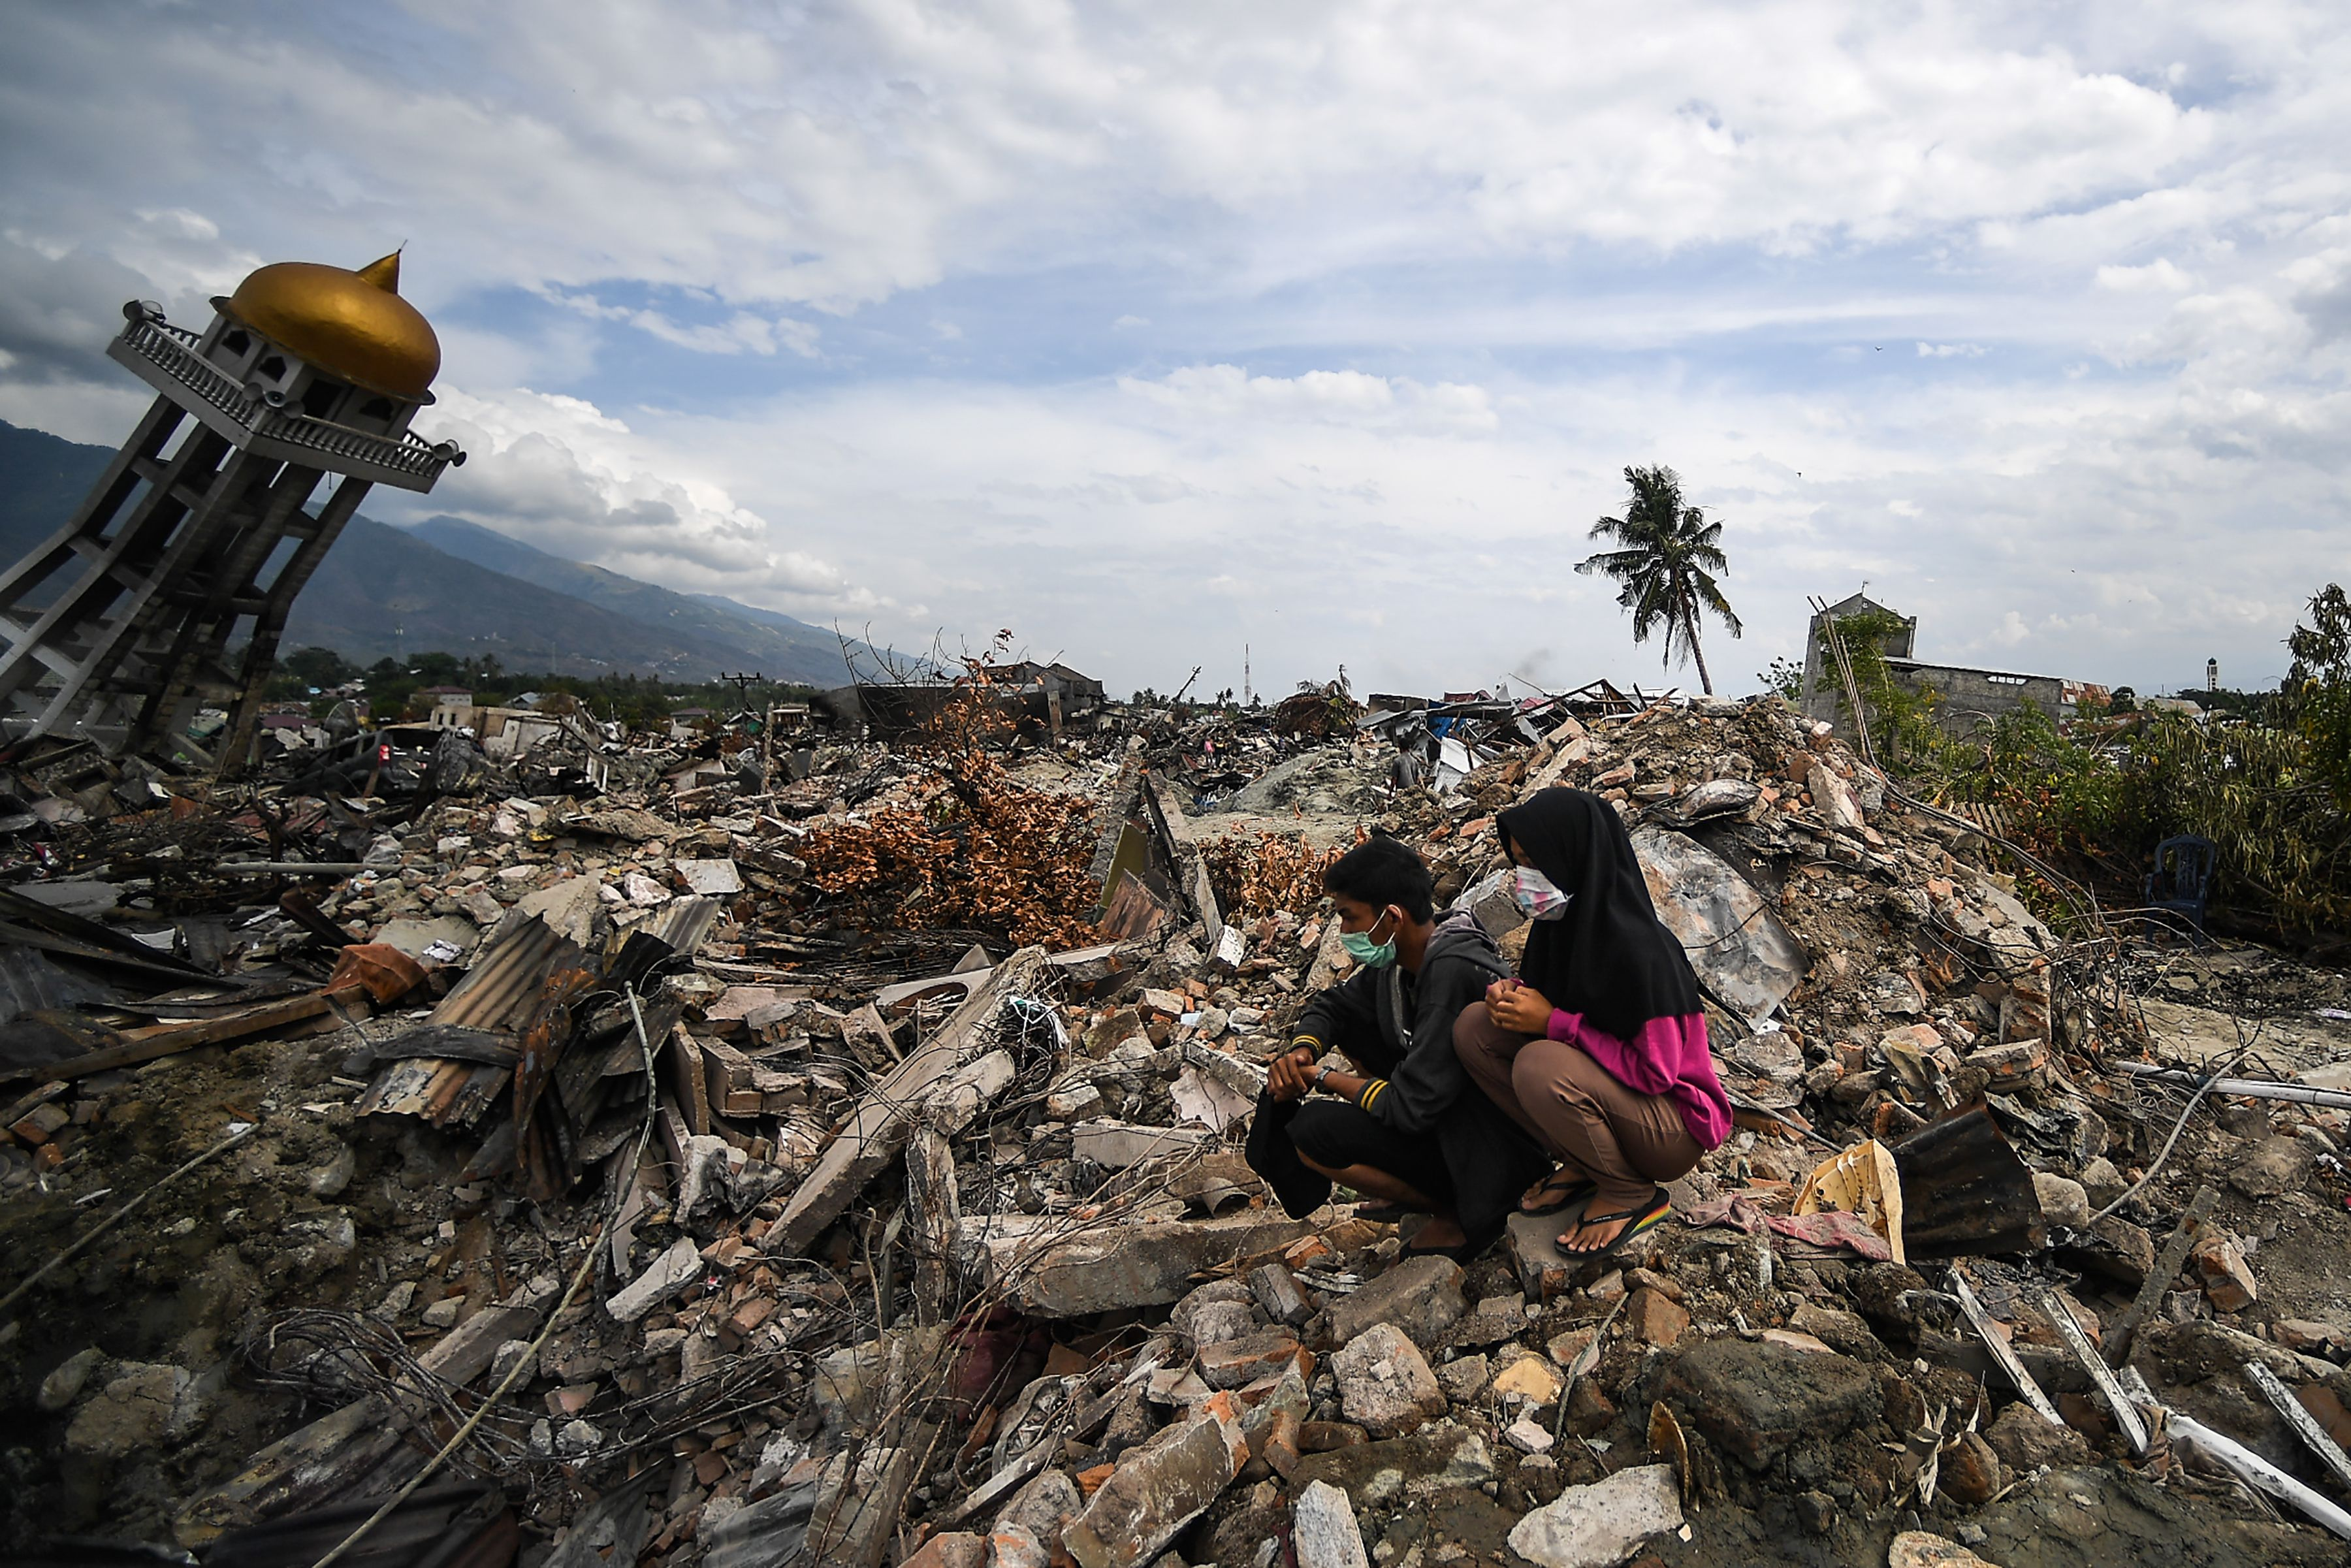 Residents sit among debris at Perumnas Balaroa village in Palu in Indonesia's Central Sulawesi on Oct. 6, 2018.